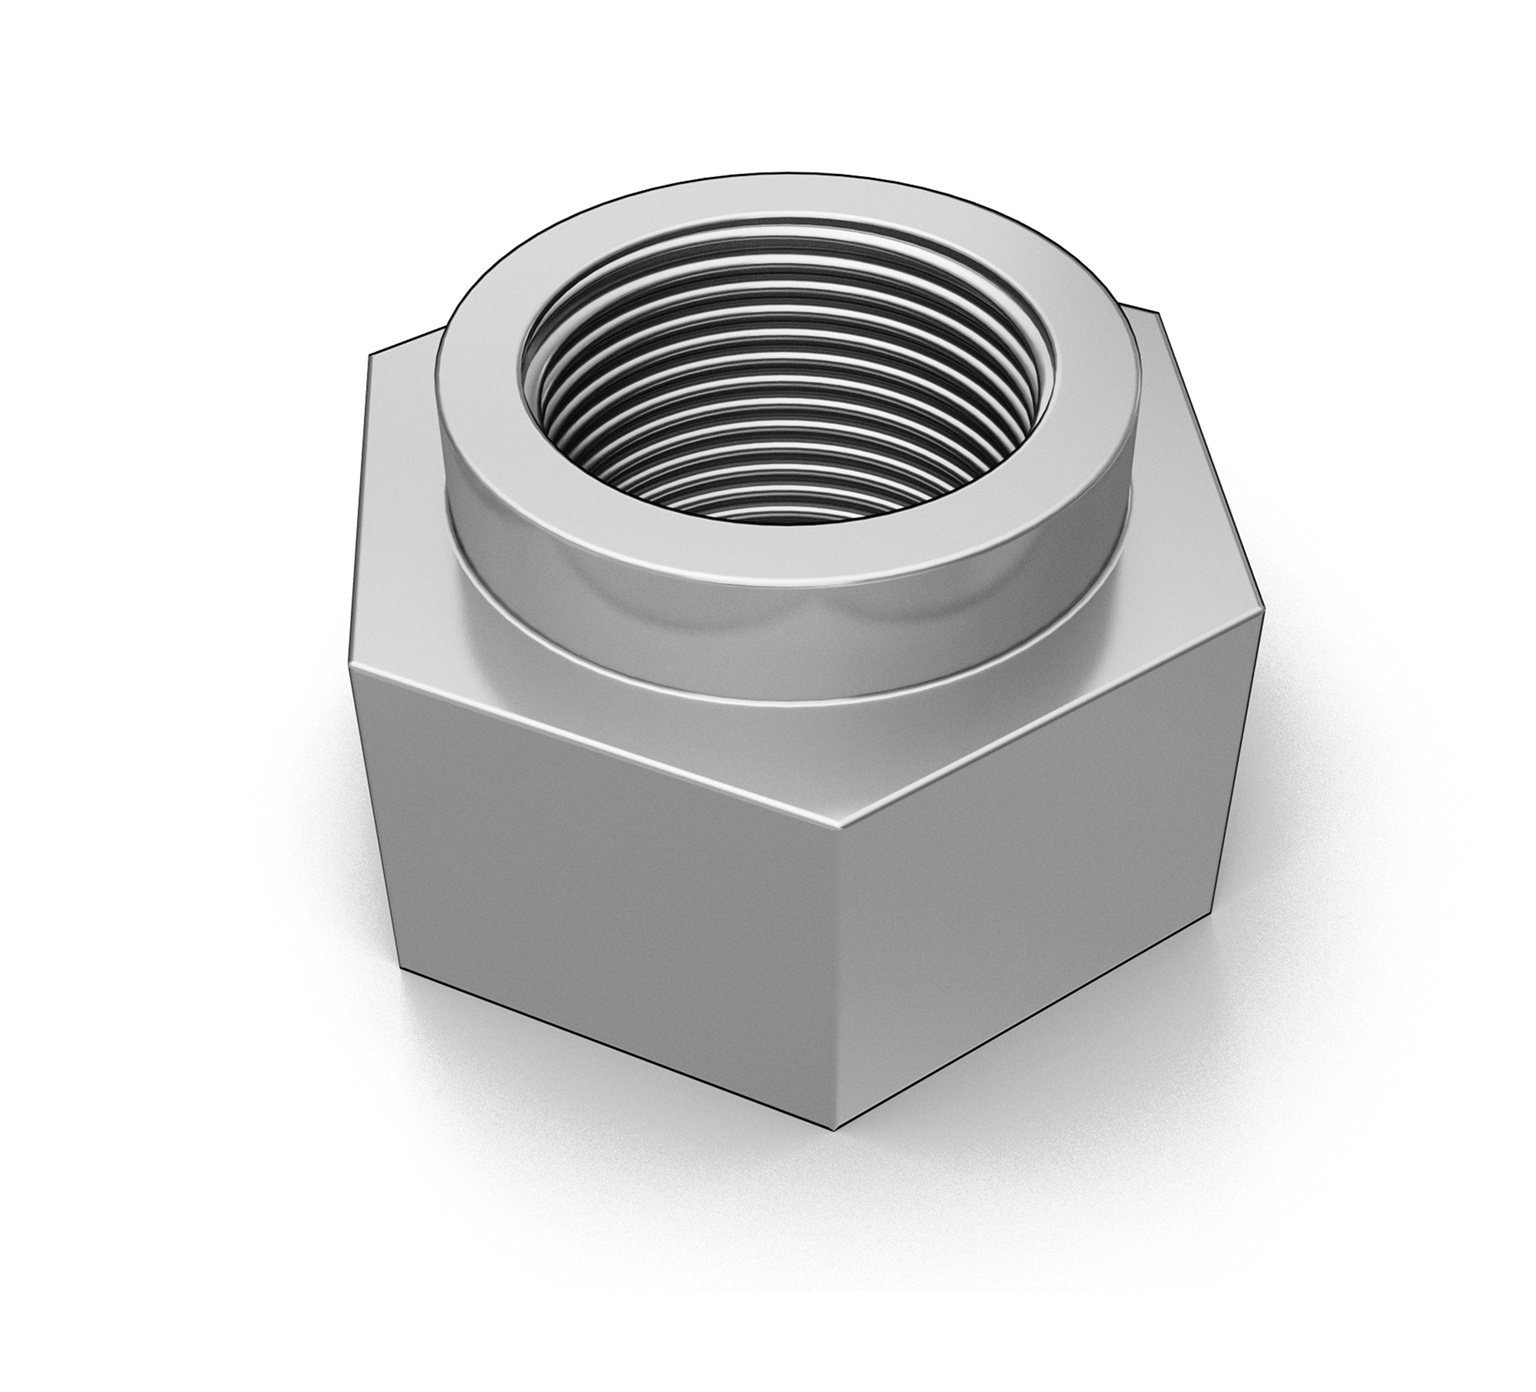 33342 Carbon Steel Hex Lock Nut - 1.05 x 0.63 in alt 1